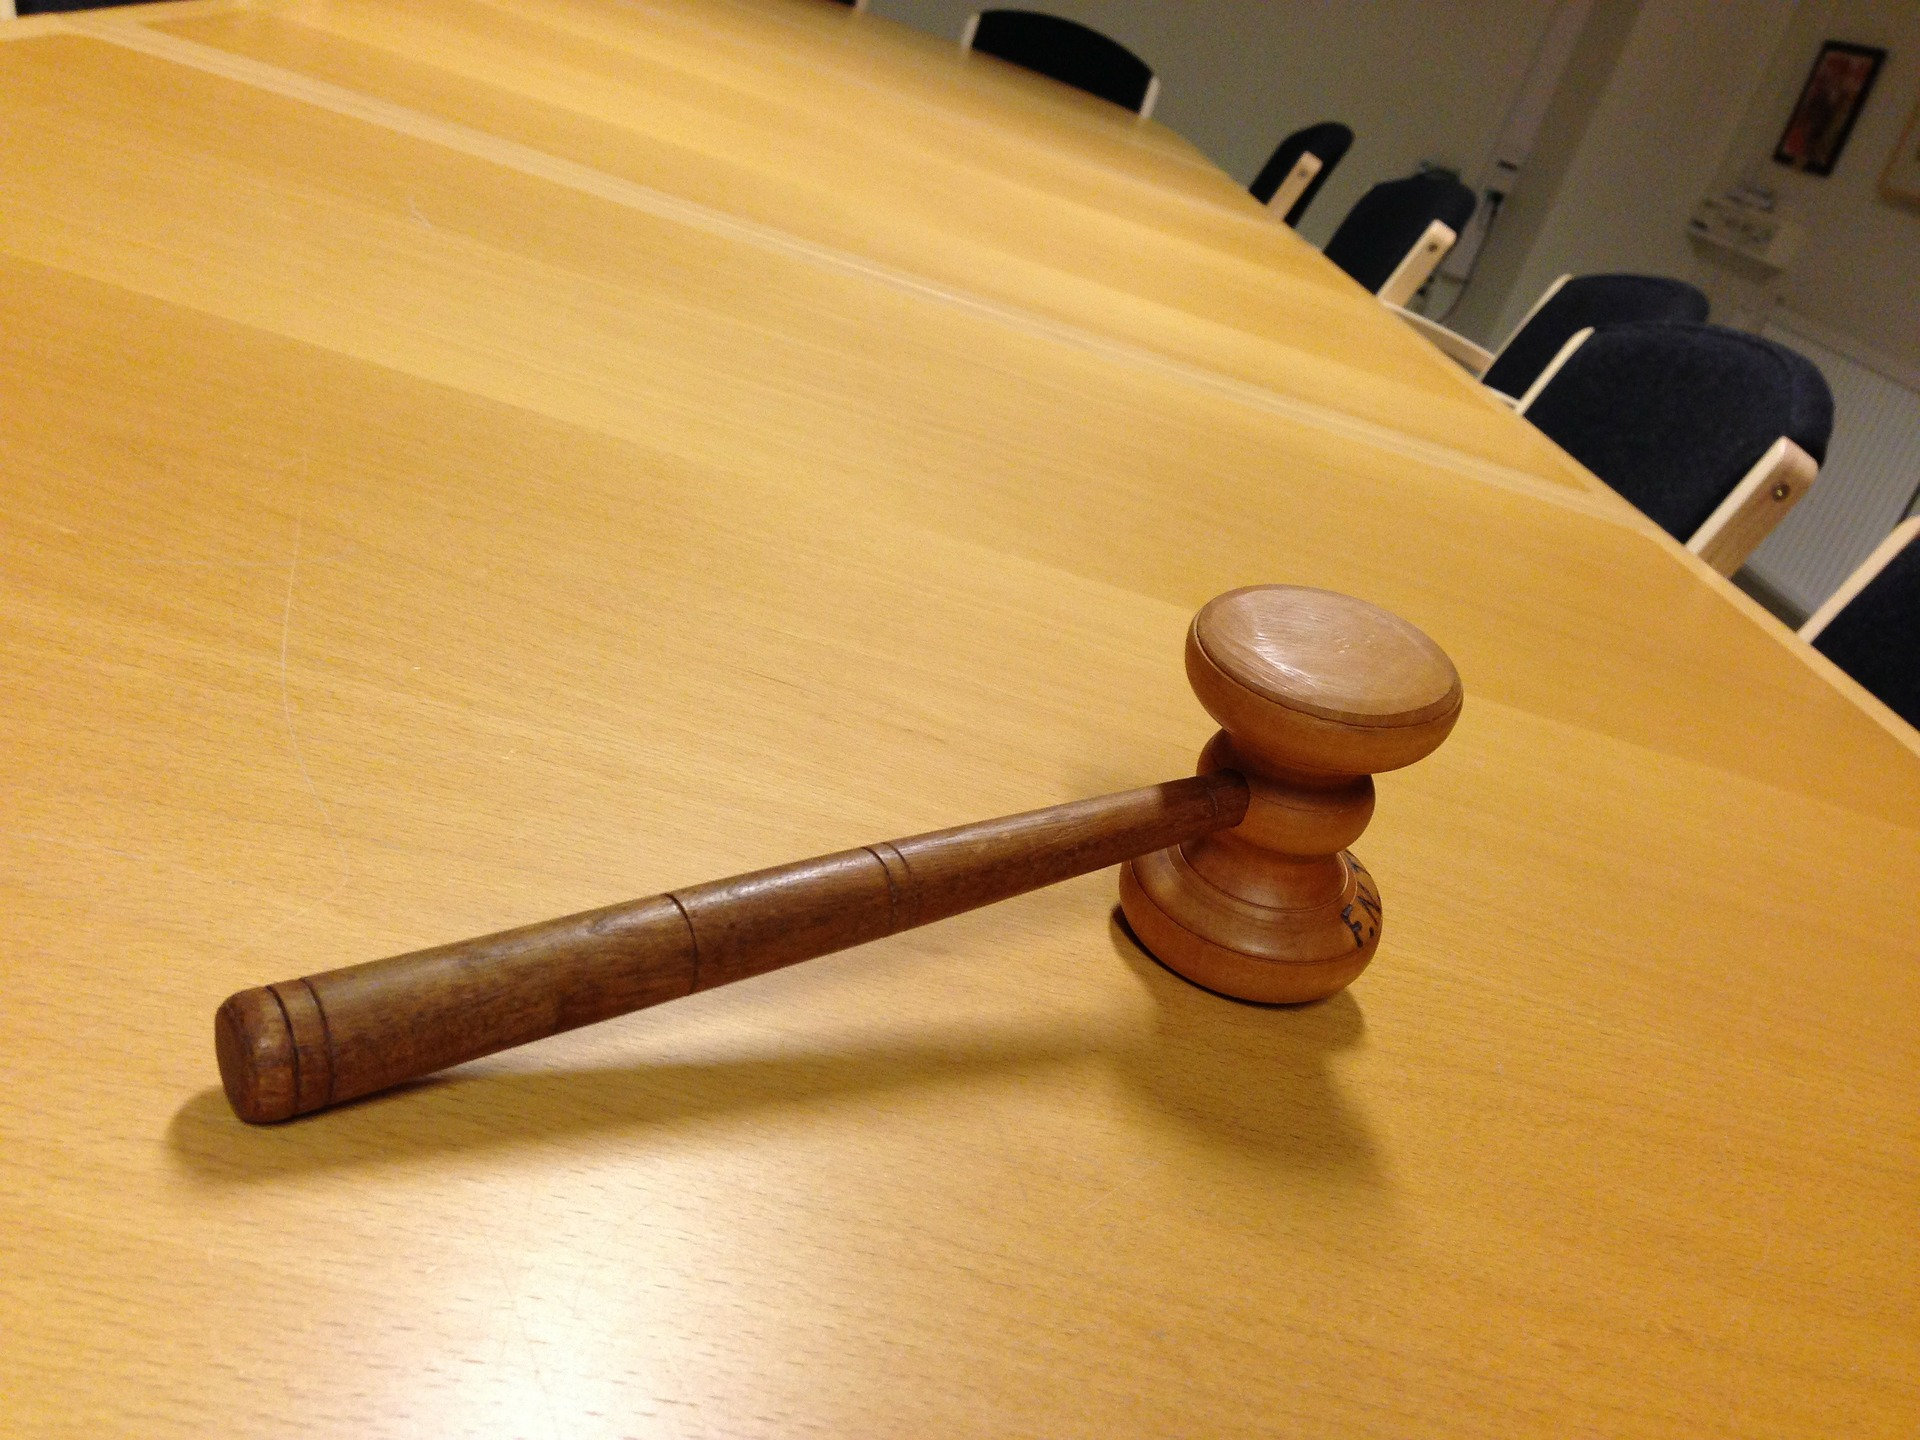 a meeting table with a gavel on it